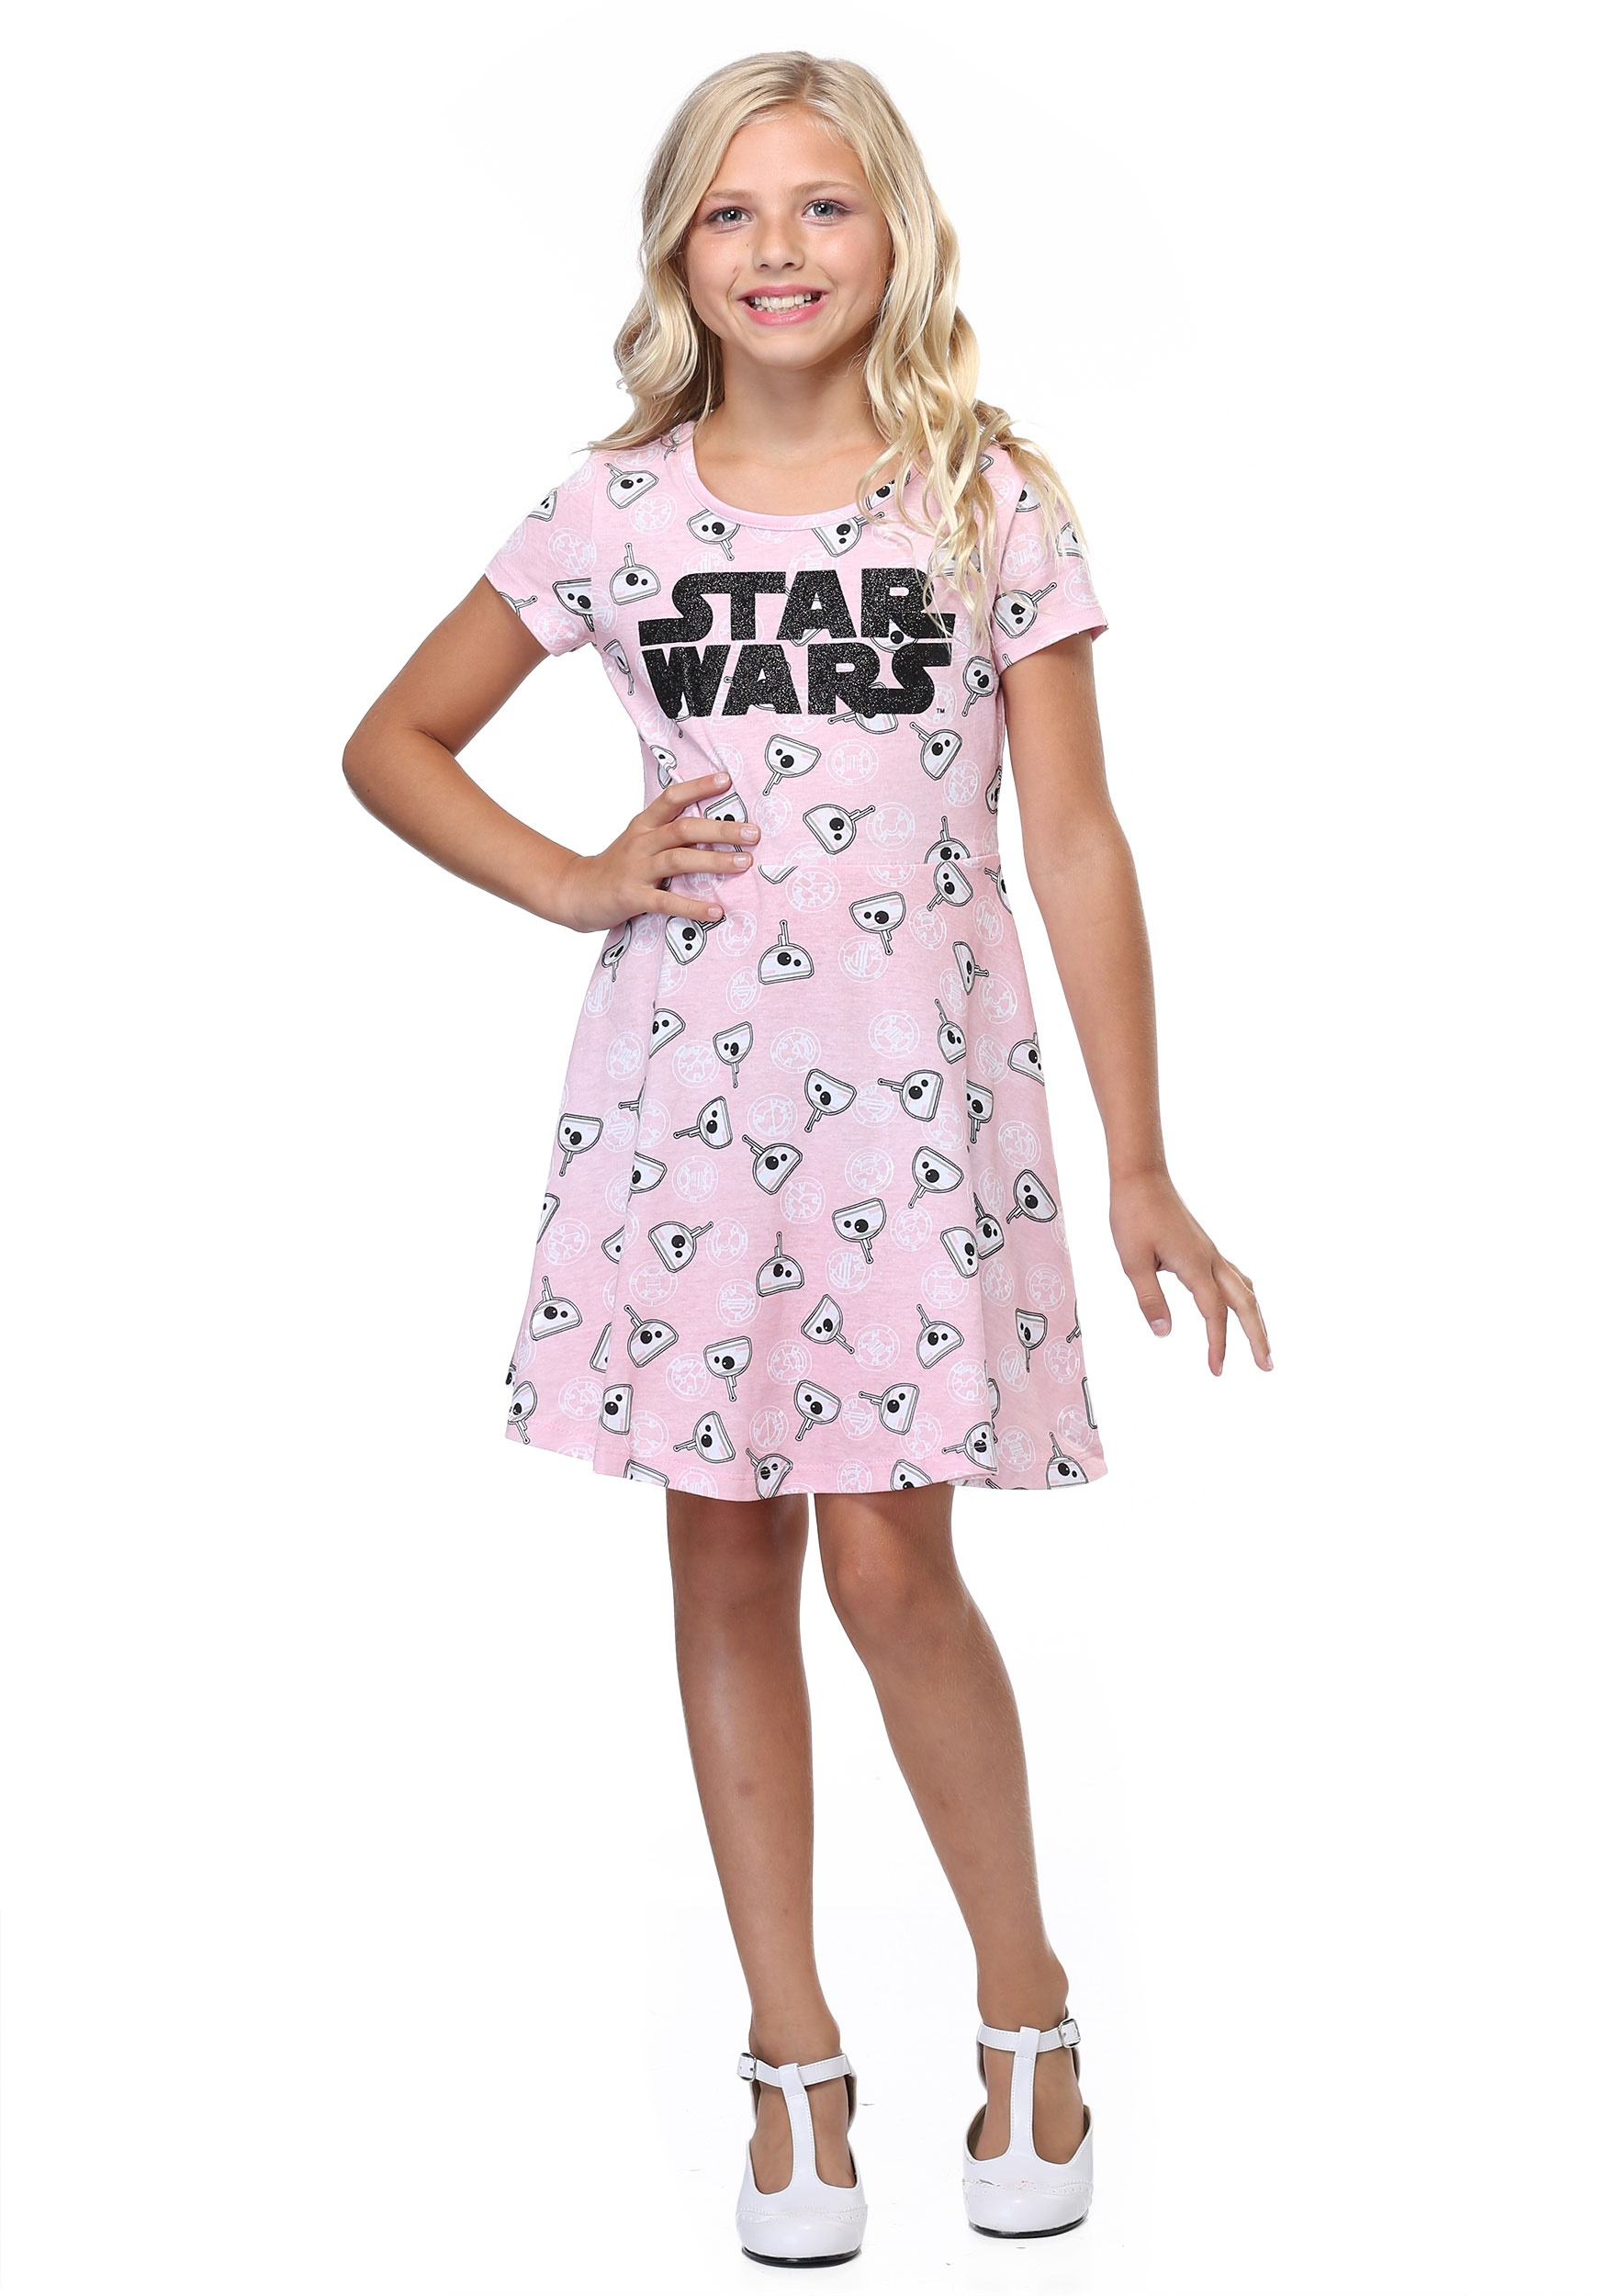 Star Wars BB-8 Pink Dress for Girls